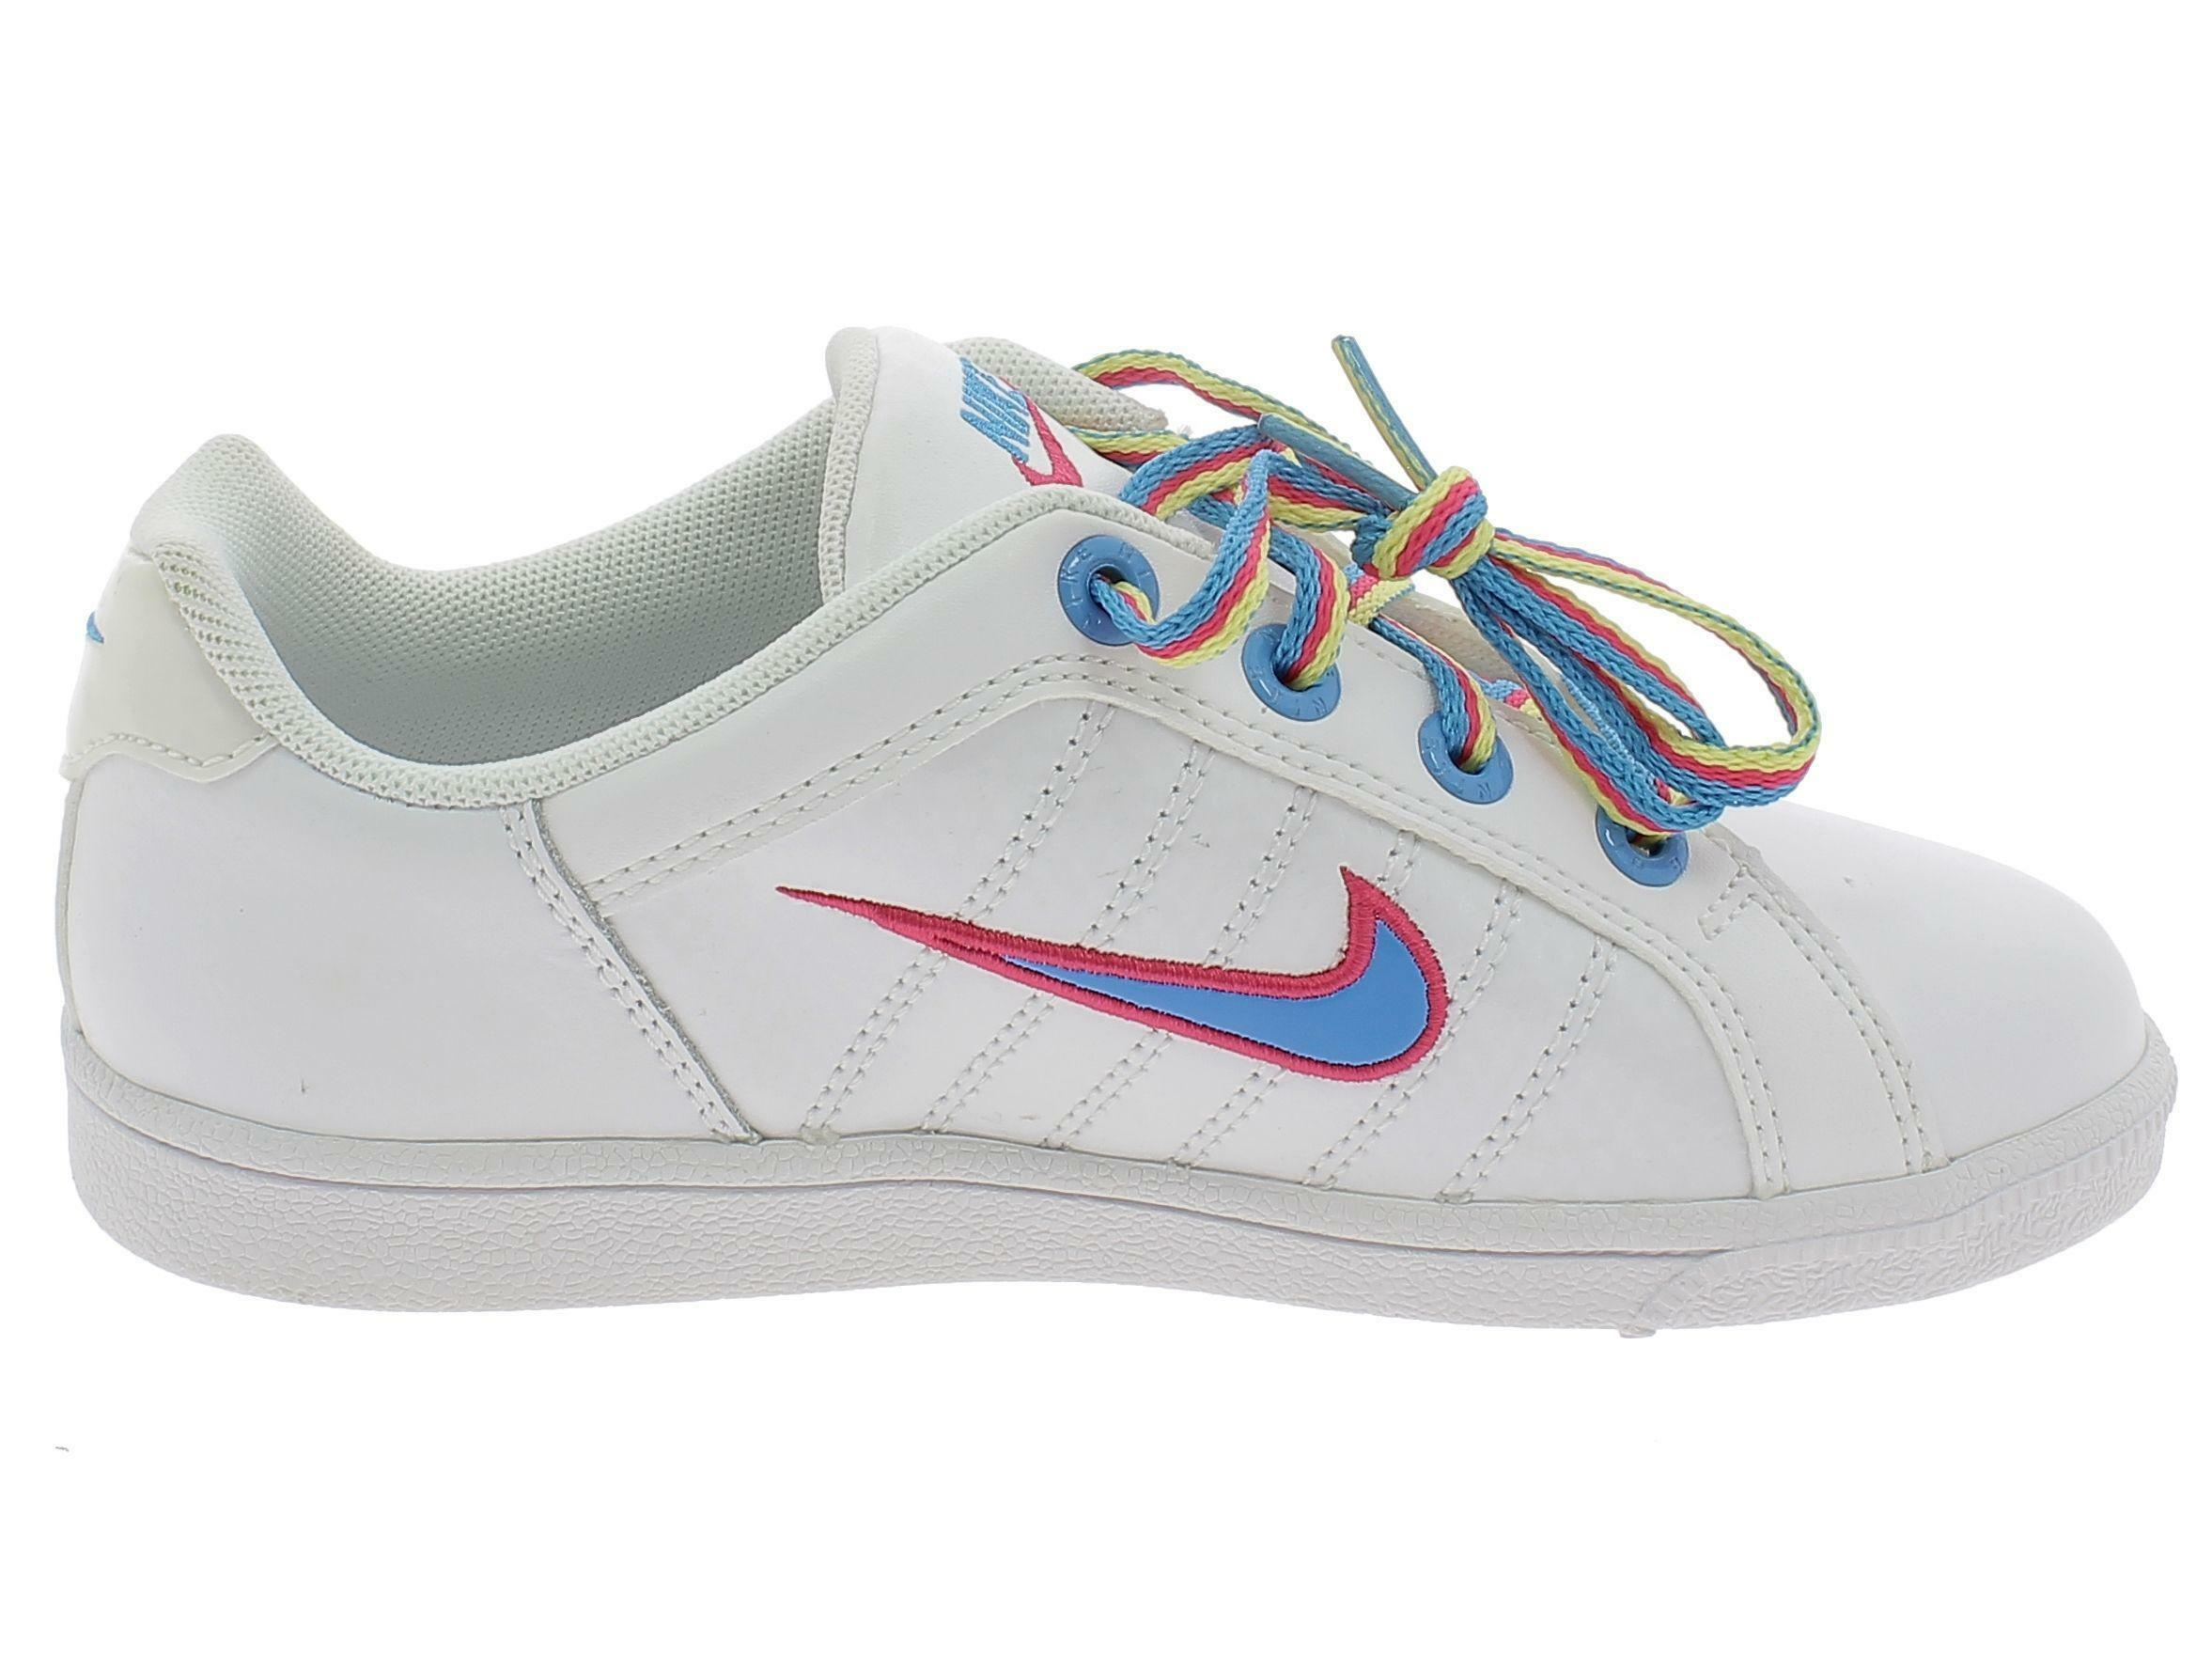 nike nike court tradition 2 plus (ps) scarpe bambina bianche pelle 386623